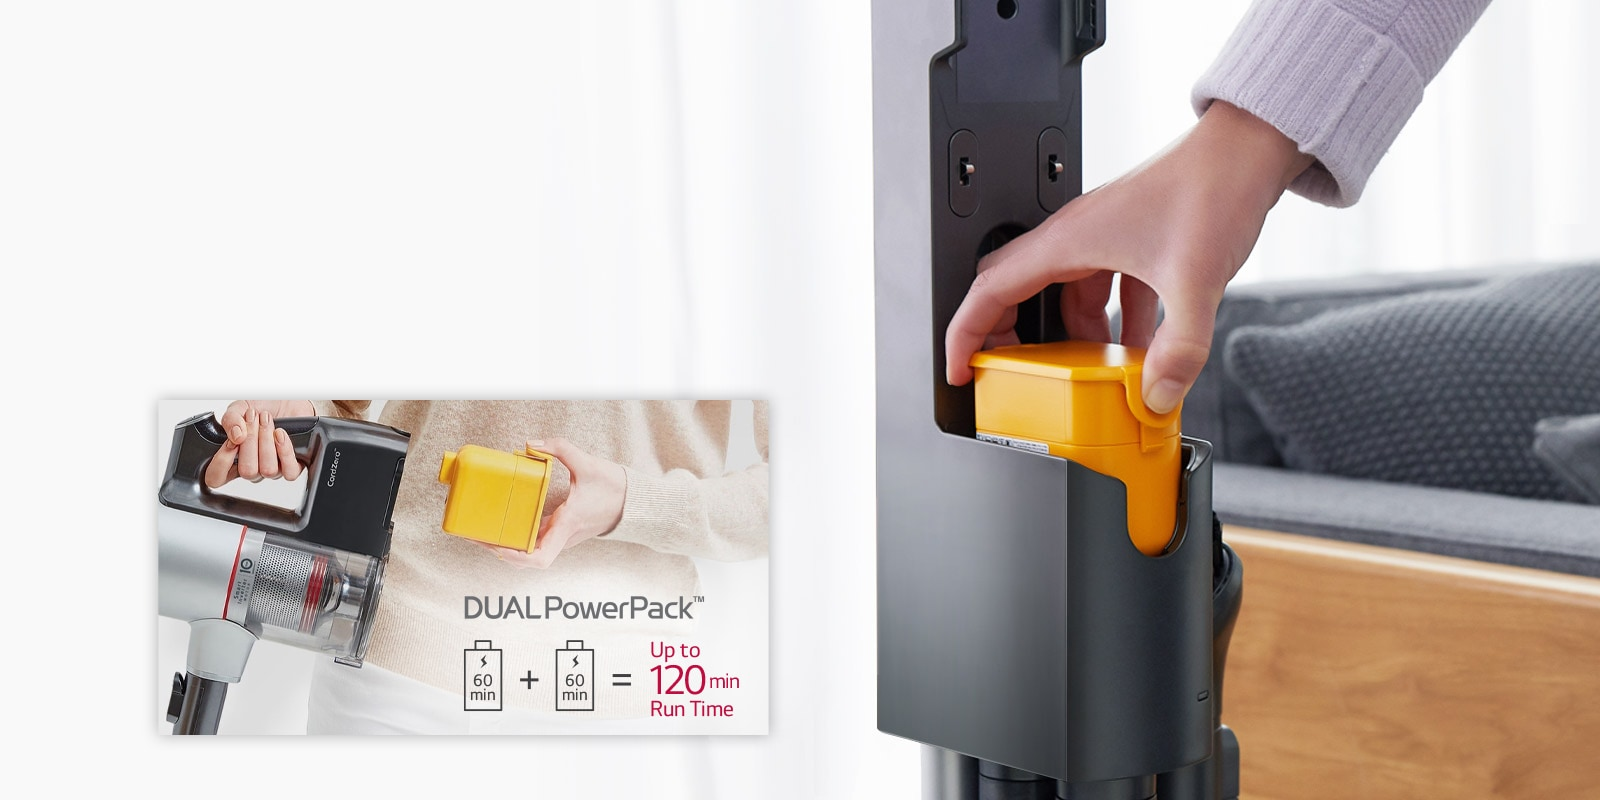 A hand places the battery pack inside the vacuum cleaner. To the left is an icon with two batteries with +60 min on the side and arrows. The batteries move to indicate they can be swapped.